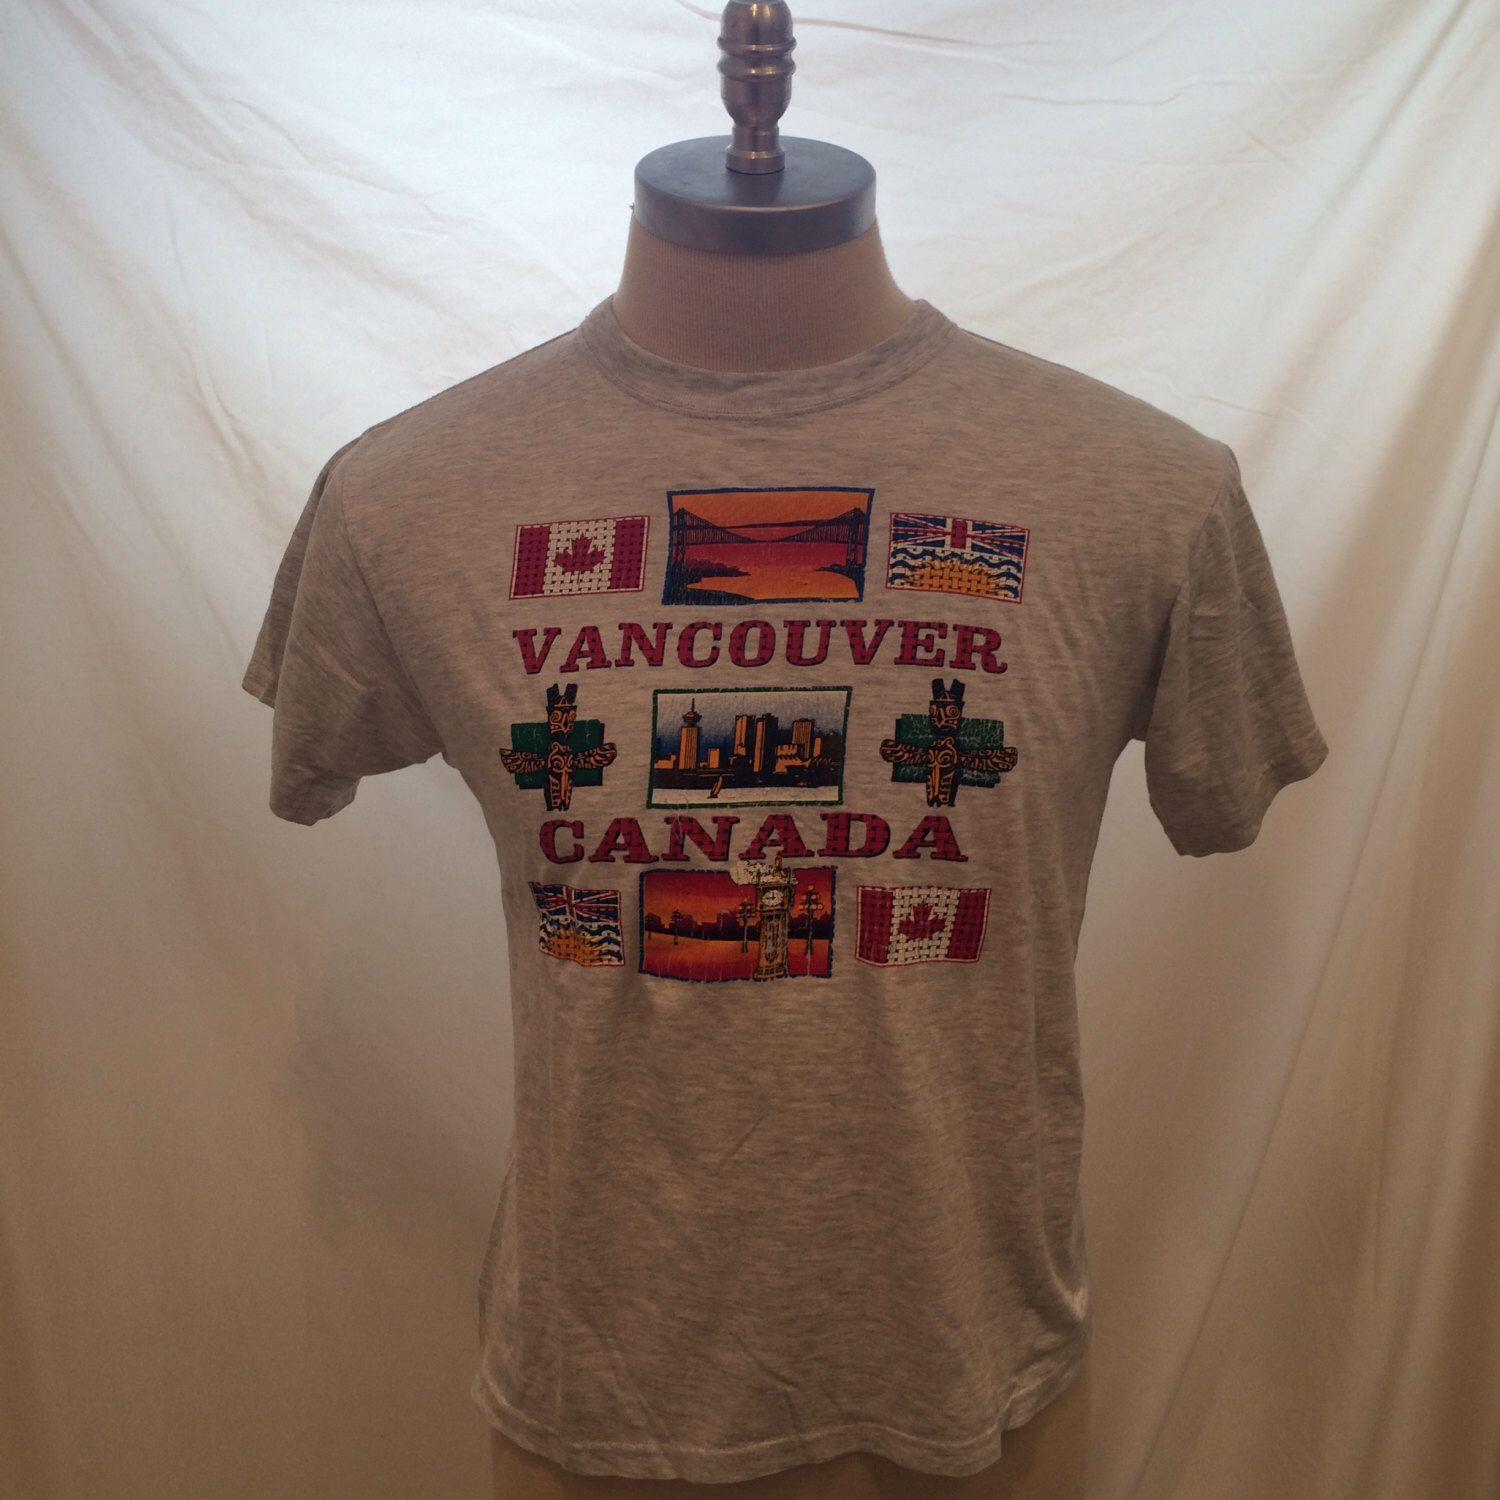 80s Vancouver Canada Vintage T Shirt T M Tees Size M Made In Canada Vintage Tshirts T Shirt Shirts